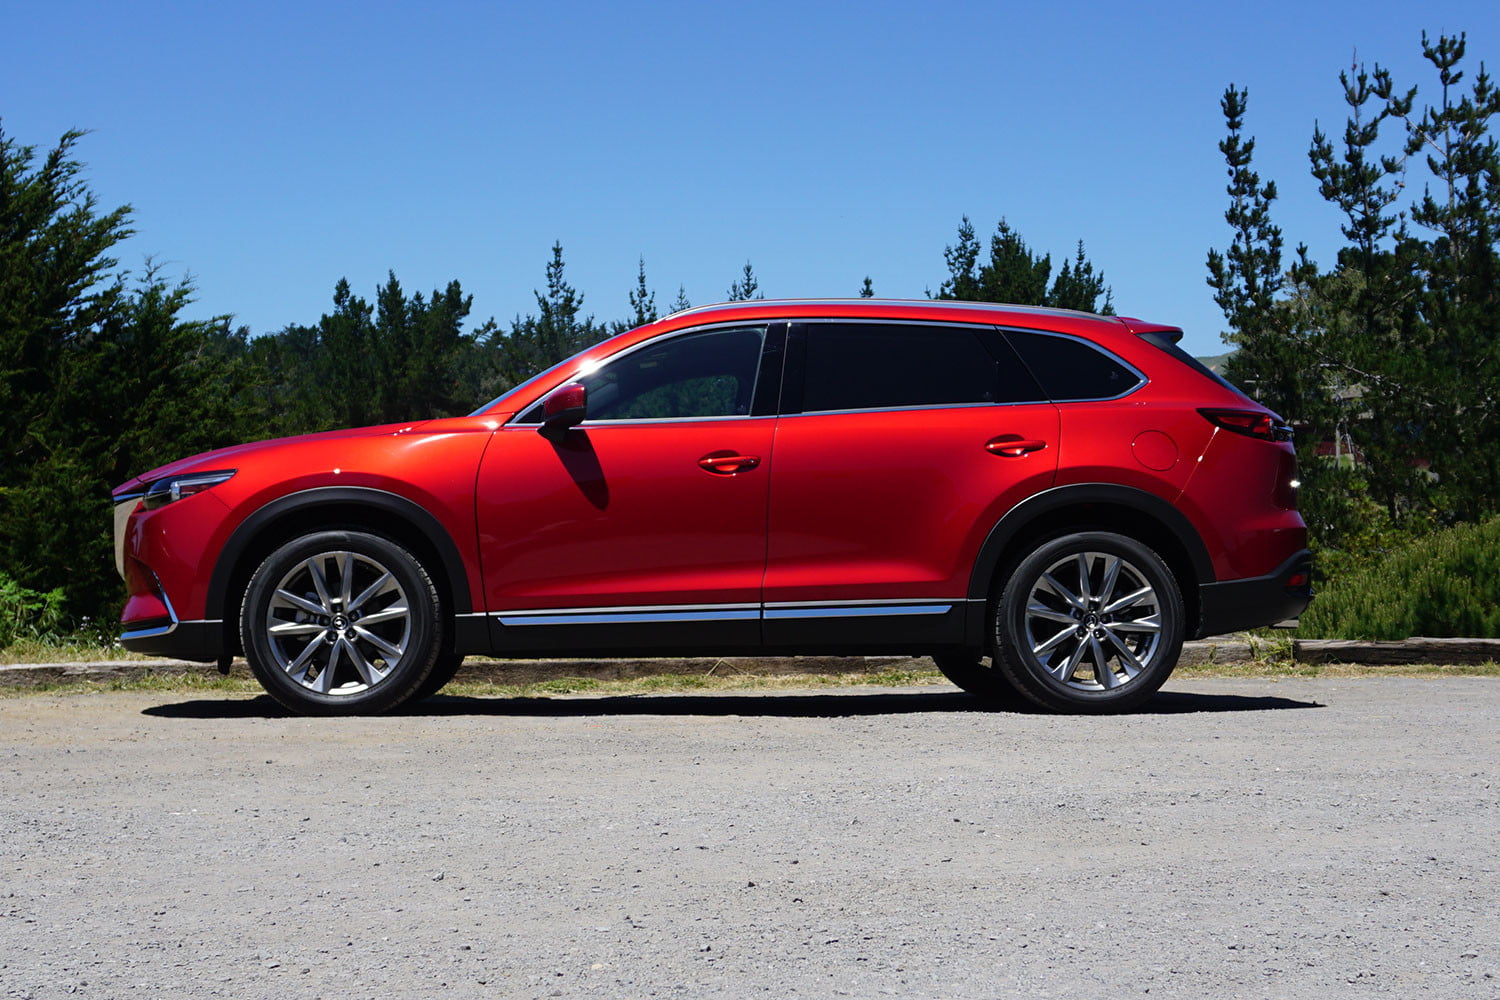 2016 mazda cx 9 first drive impressions digital trends. Black Bedroom Furniture Sets. Home Design Ideas